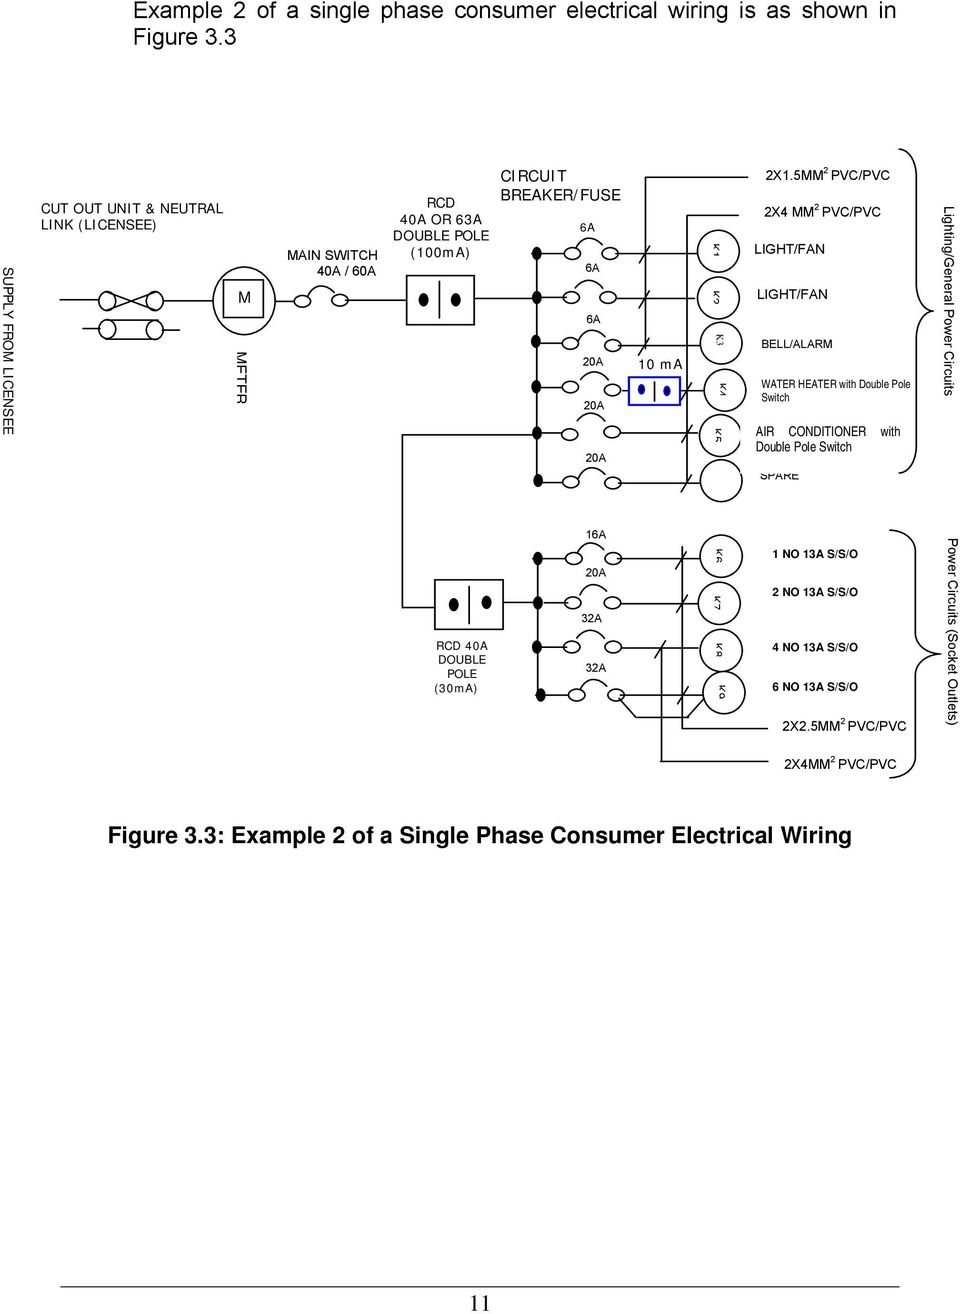 Guidelines for electrical wiring in residential buildings pdf k3 k4 k5 2x1 greentooth Images